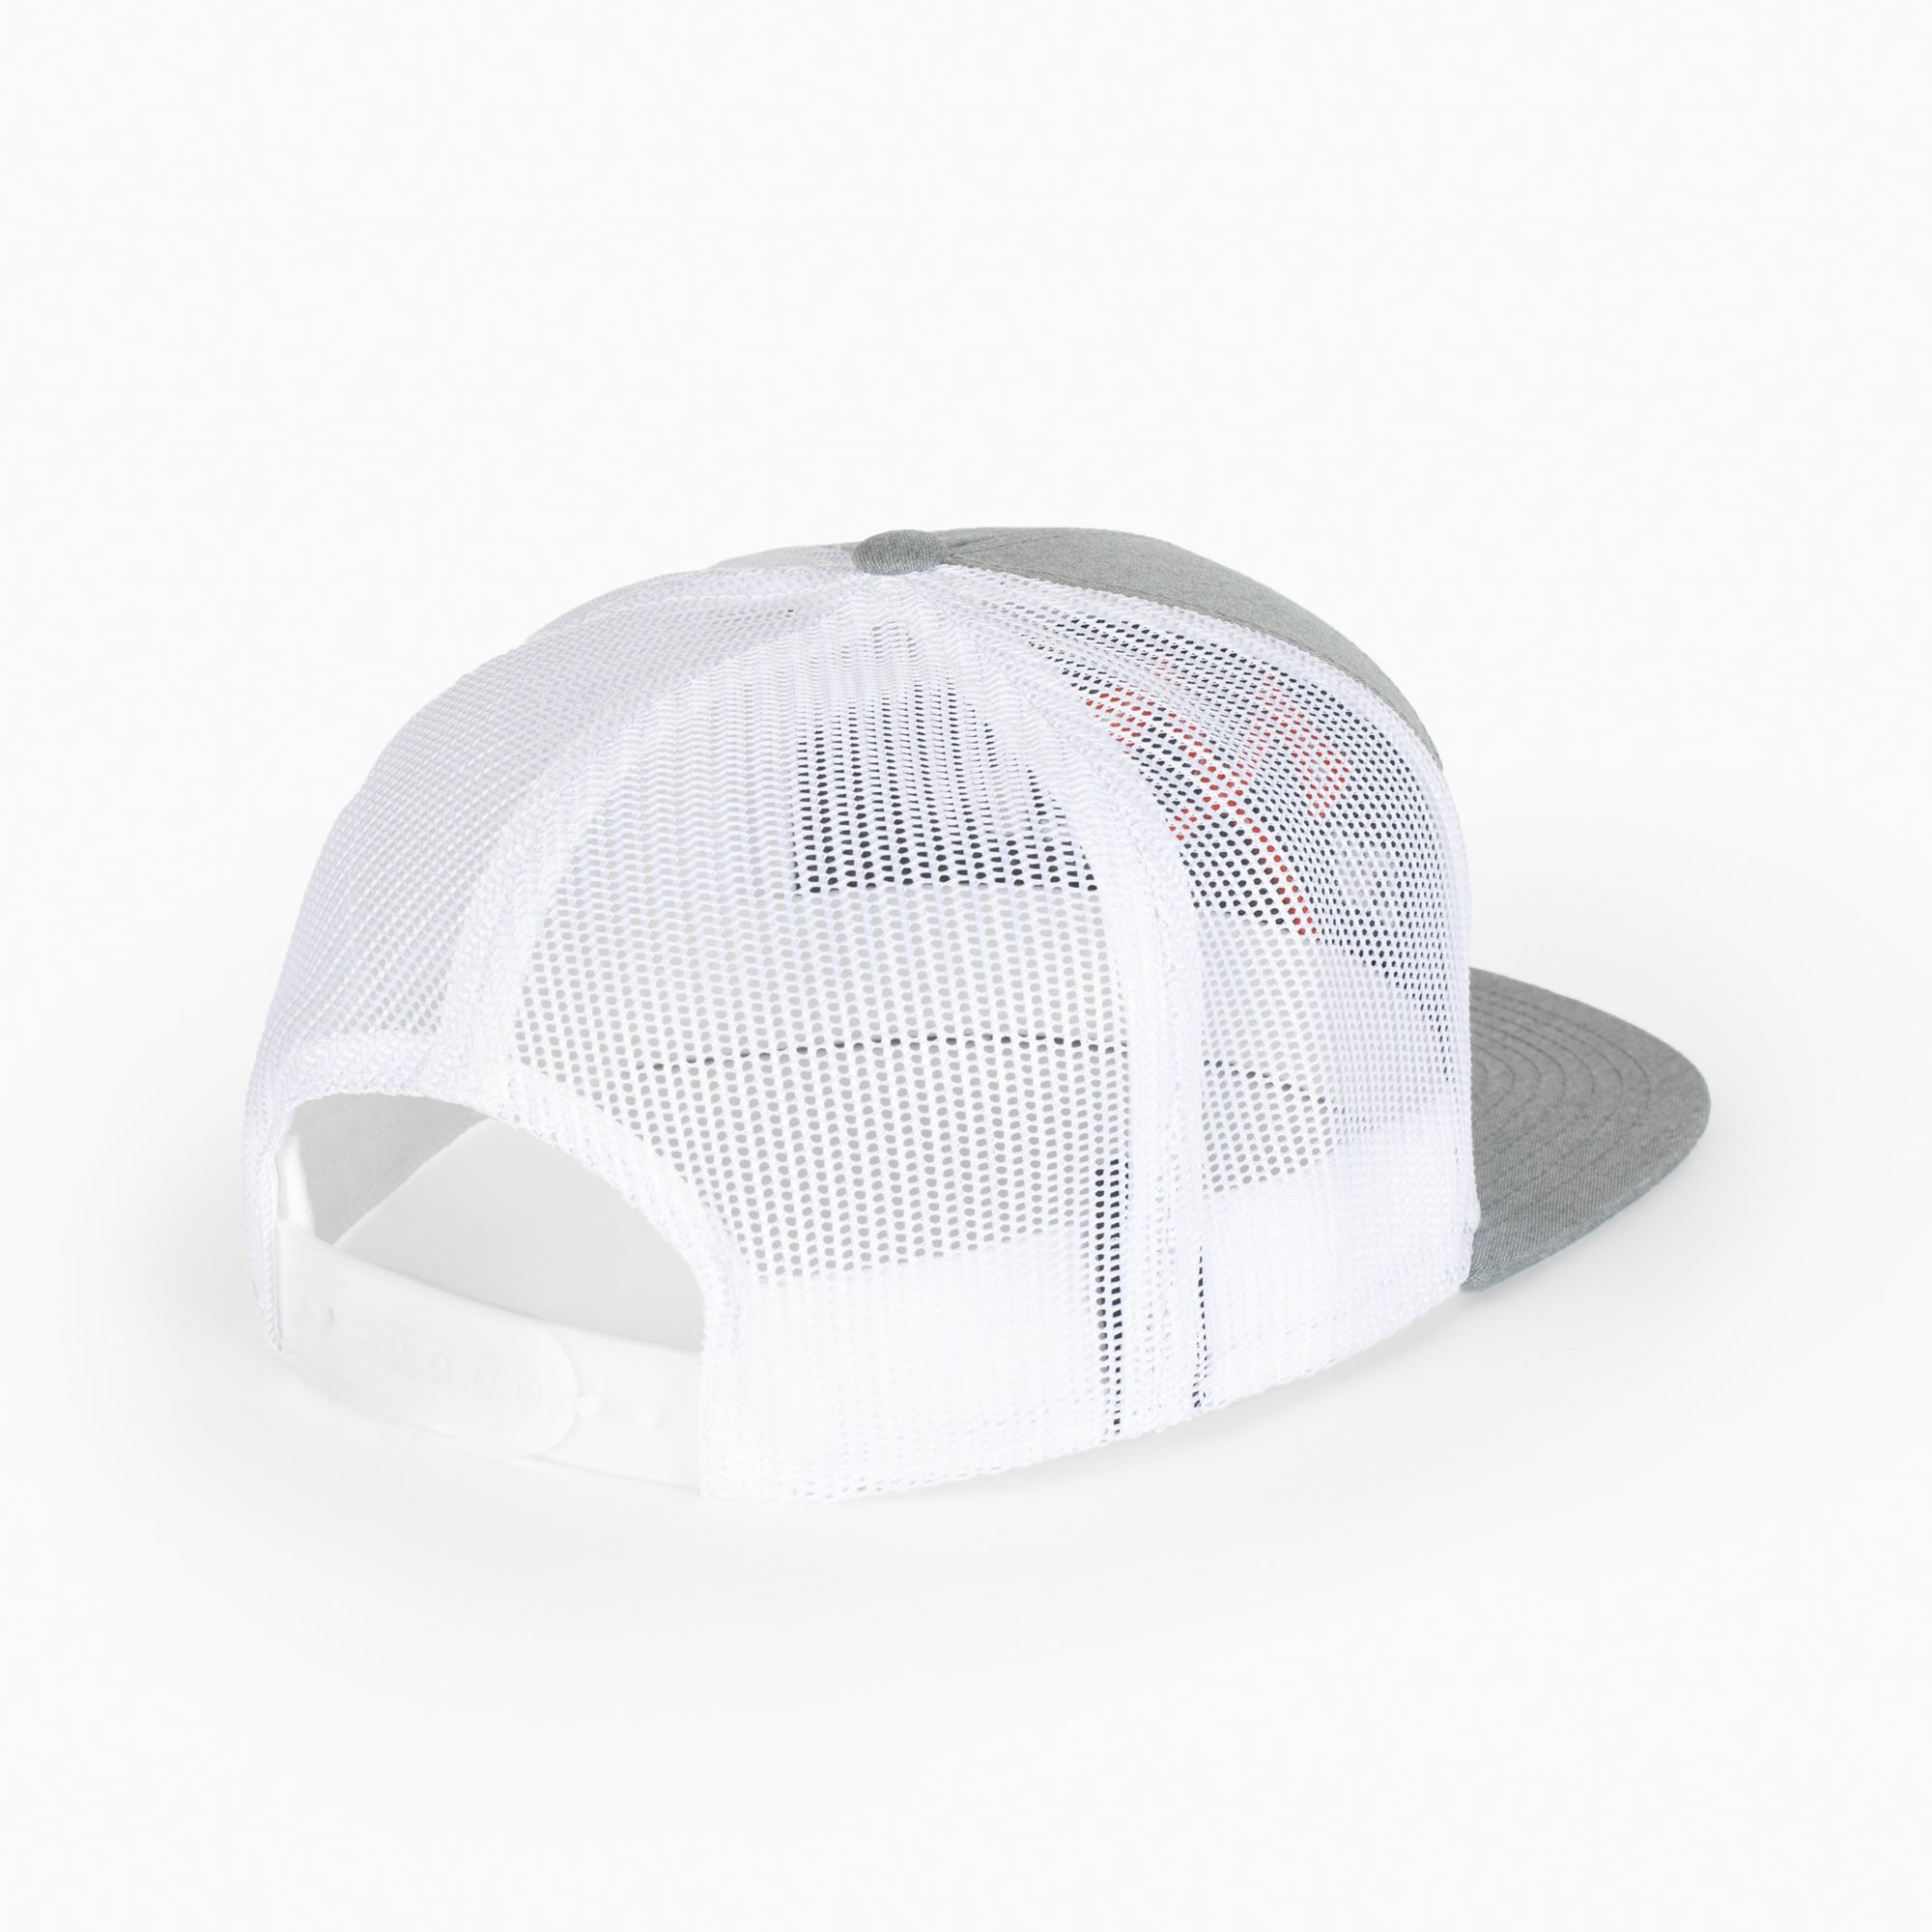 CW Embroidered Hat 7 Panel Mesh Snapback